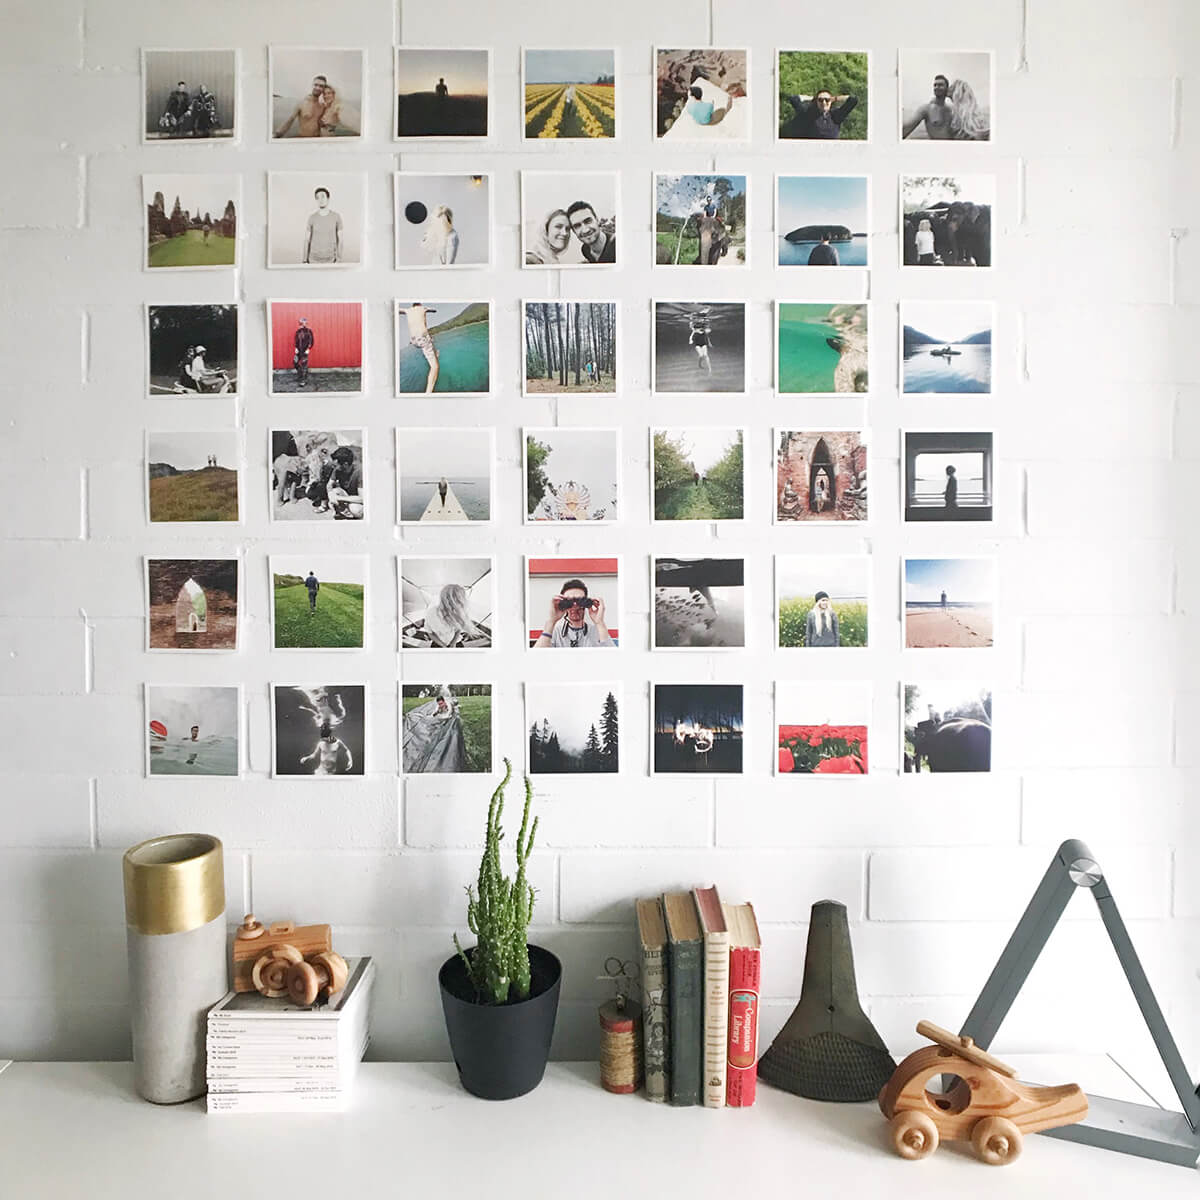 Square prints arranged in a large grid on the wall